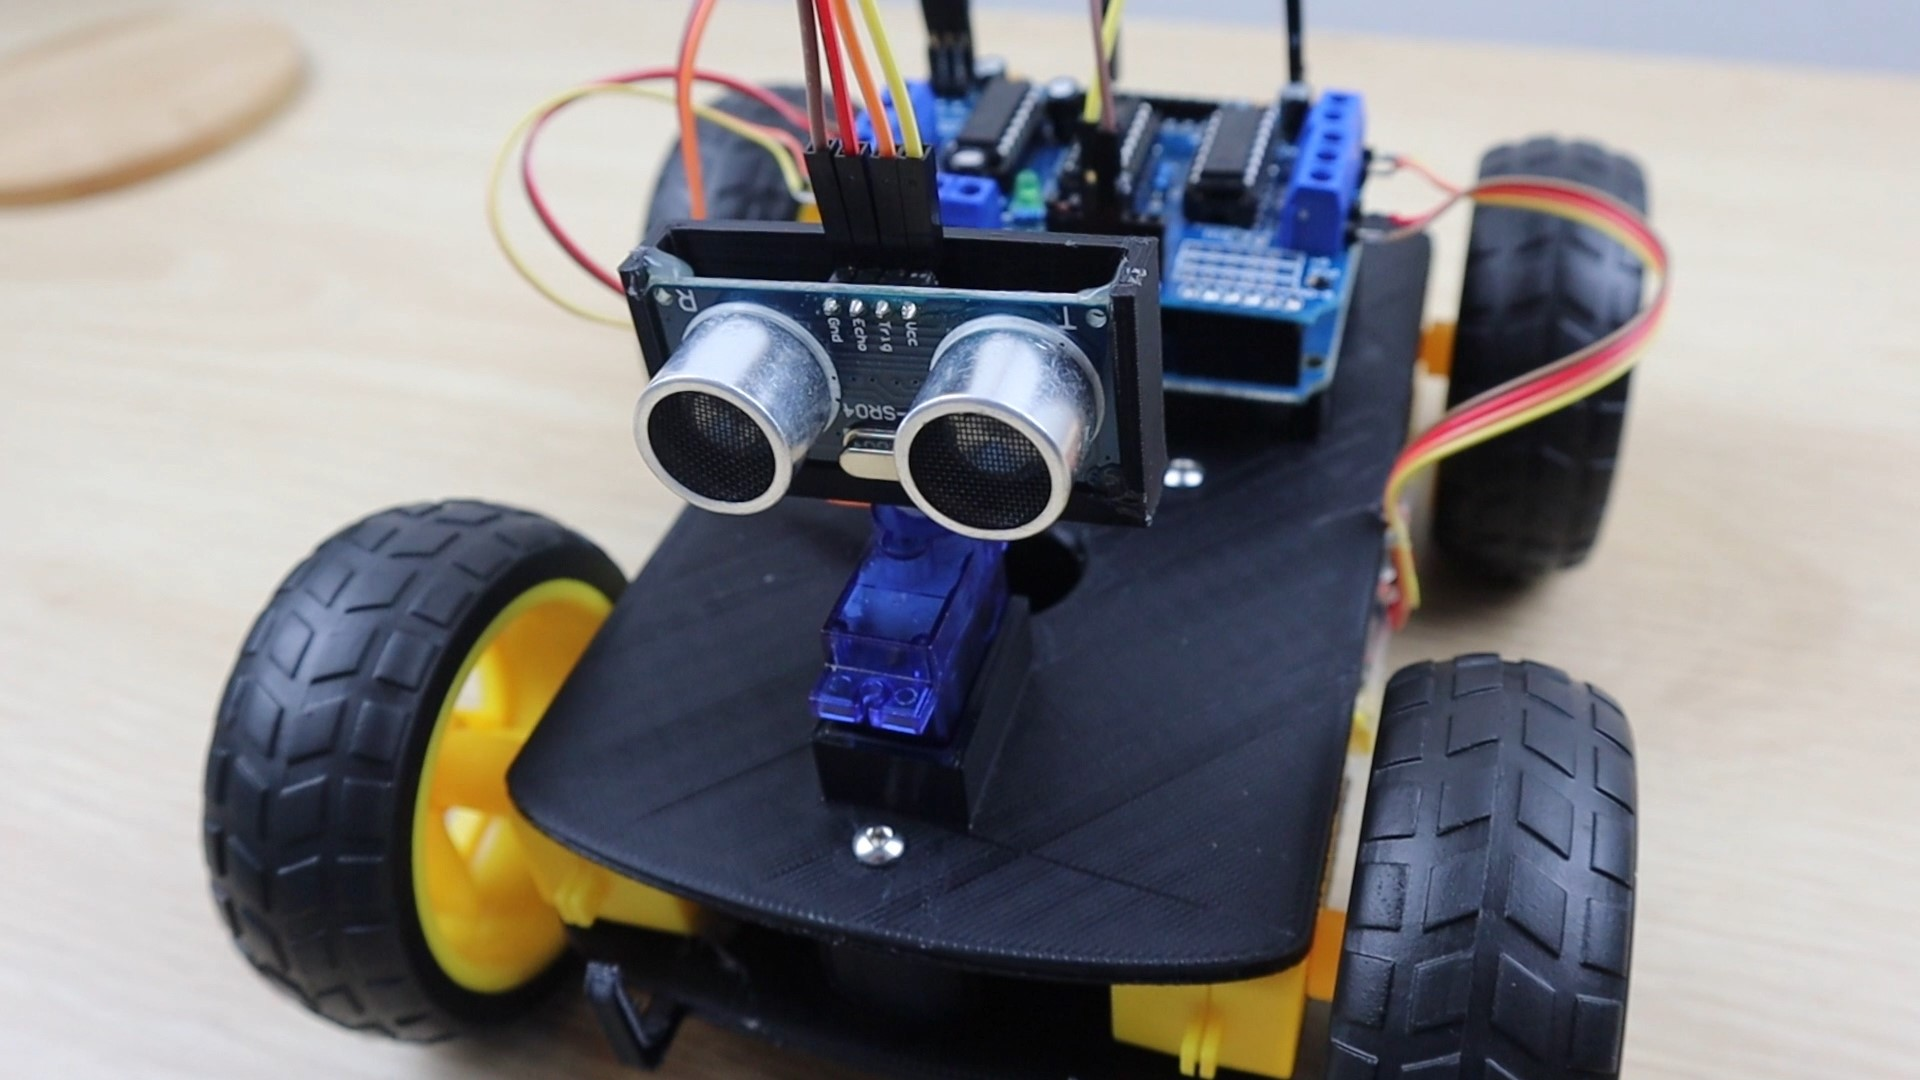 Obstacle Avoiding Robot Car Top